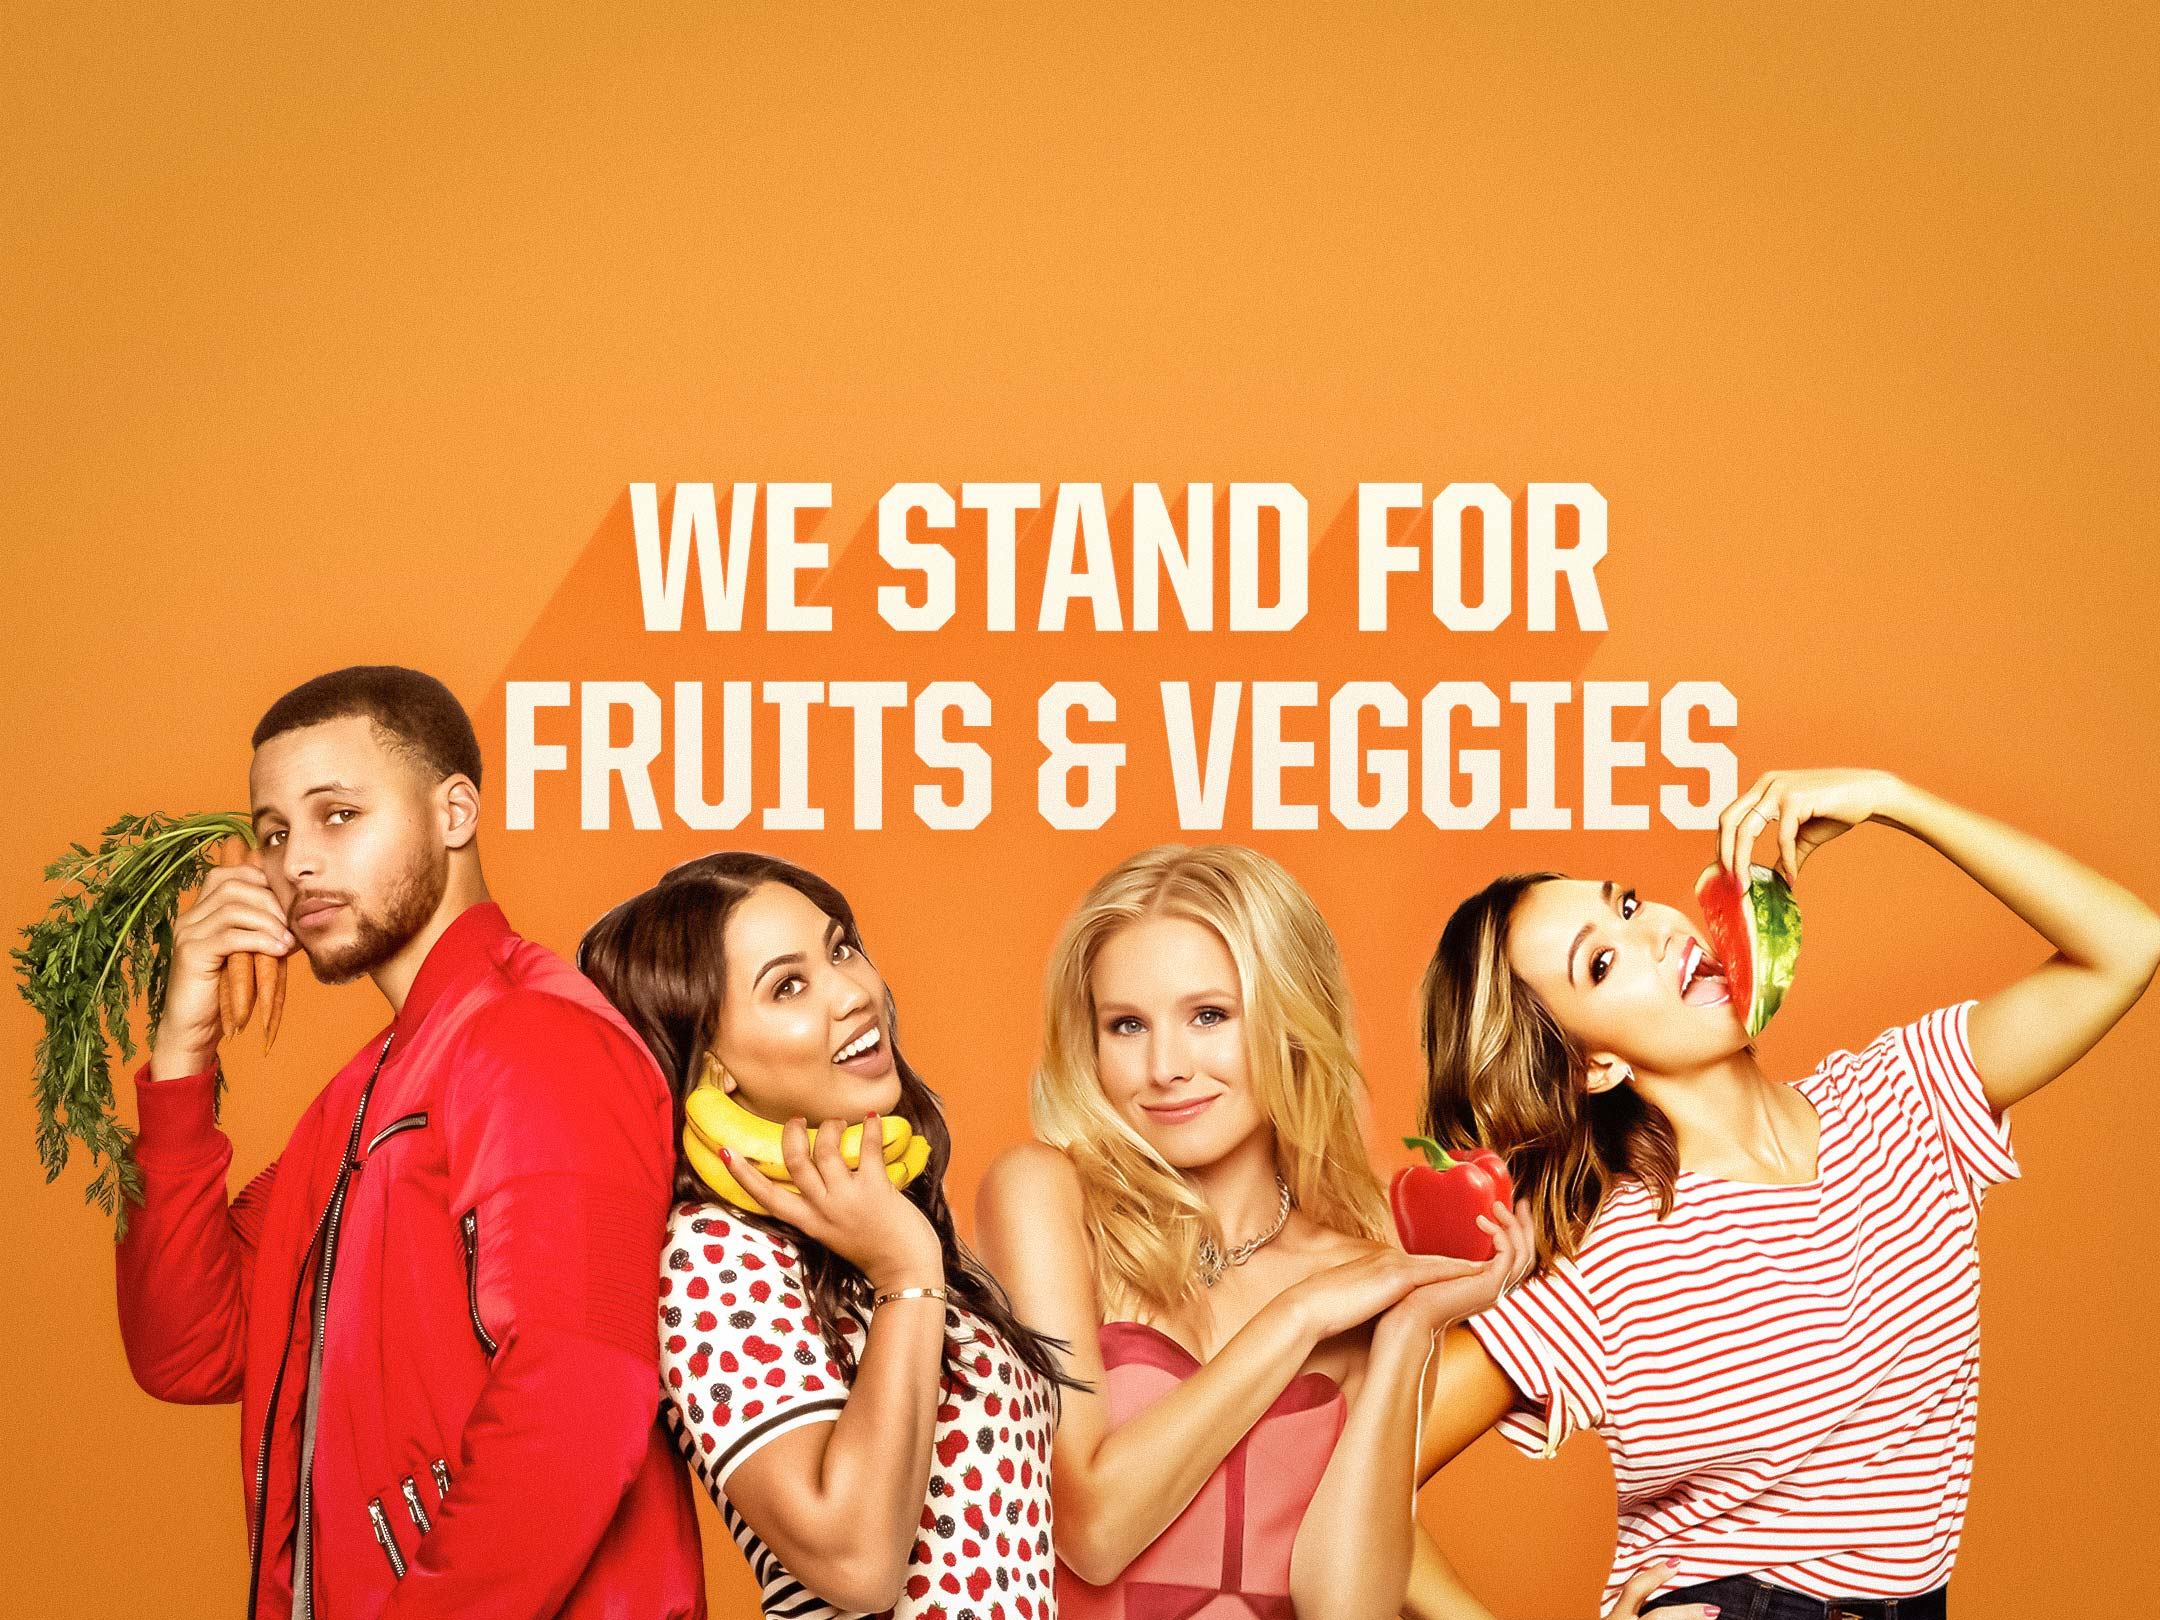 We stand for fuits and veggies.